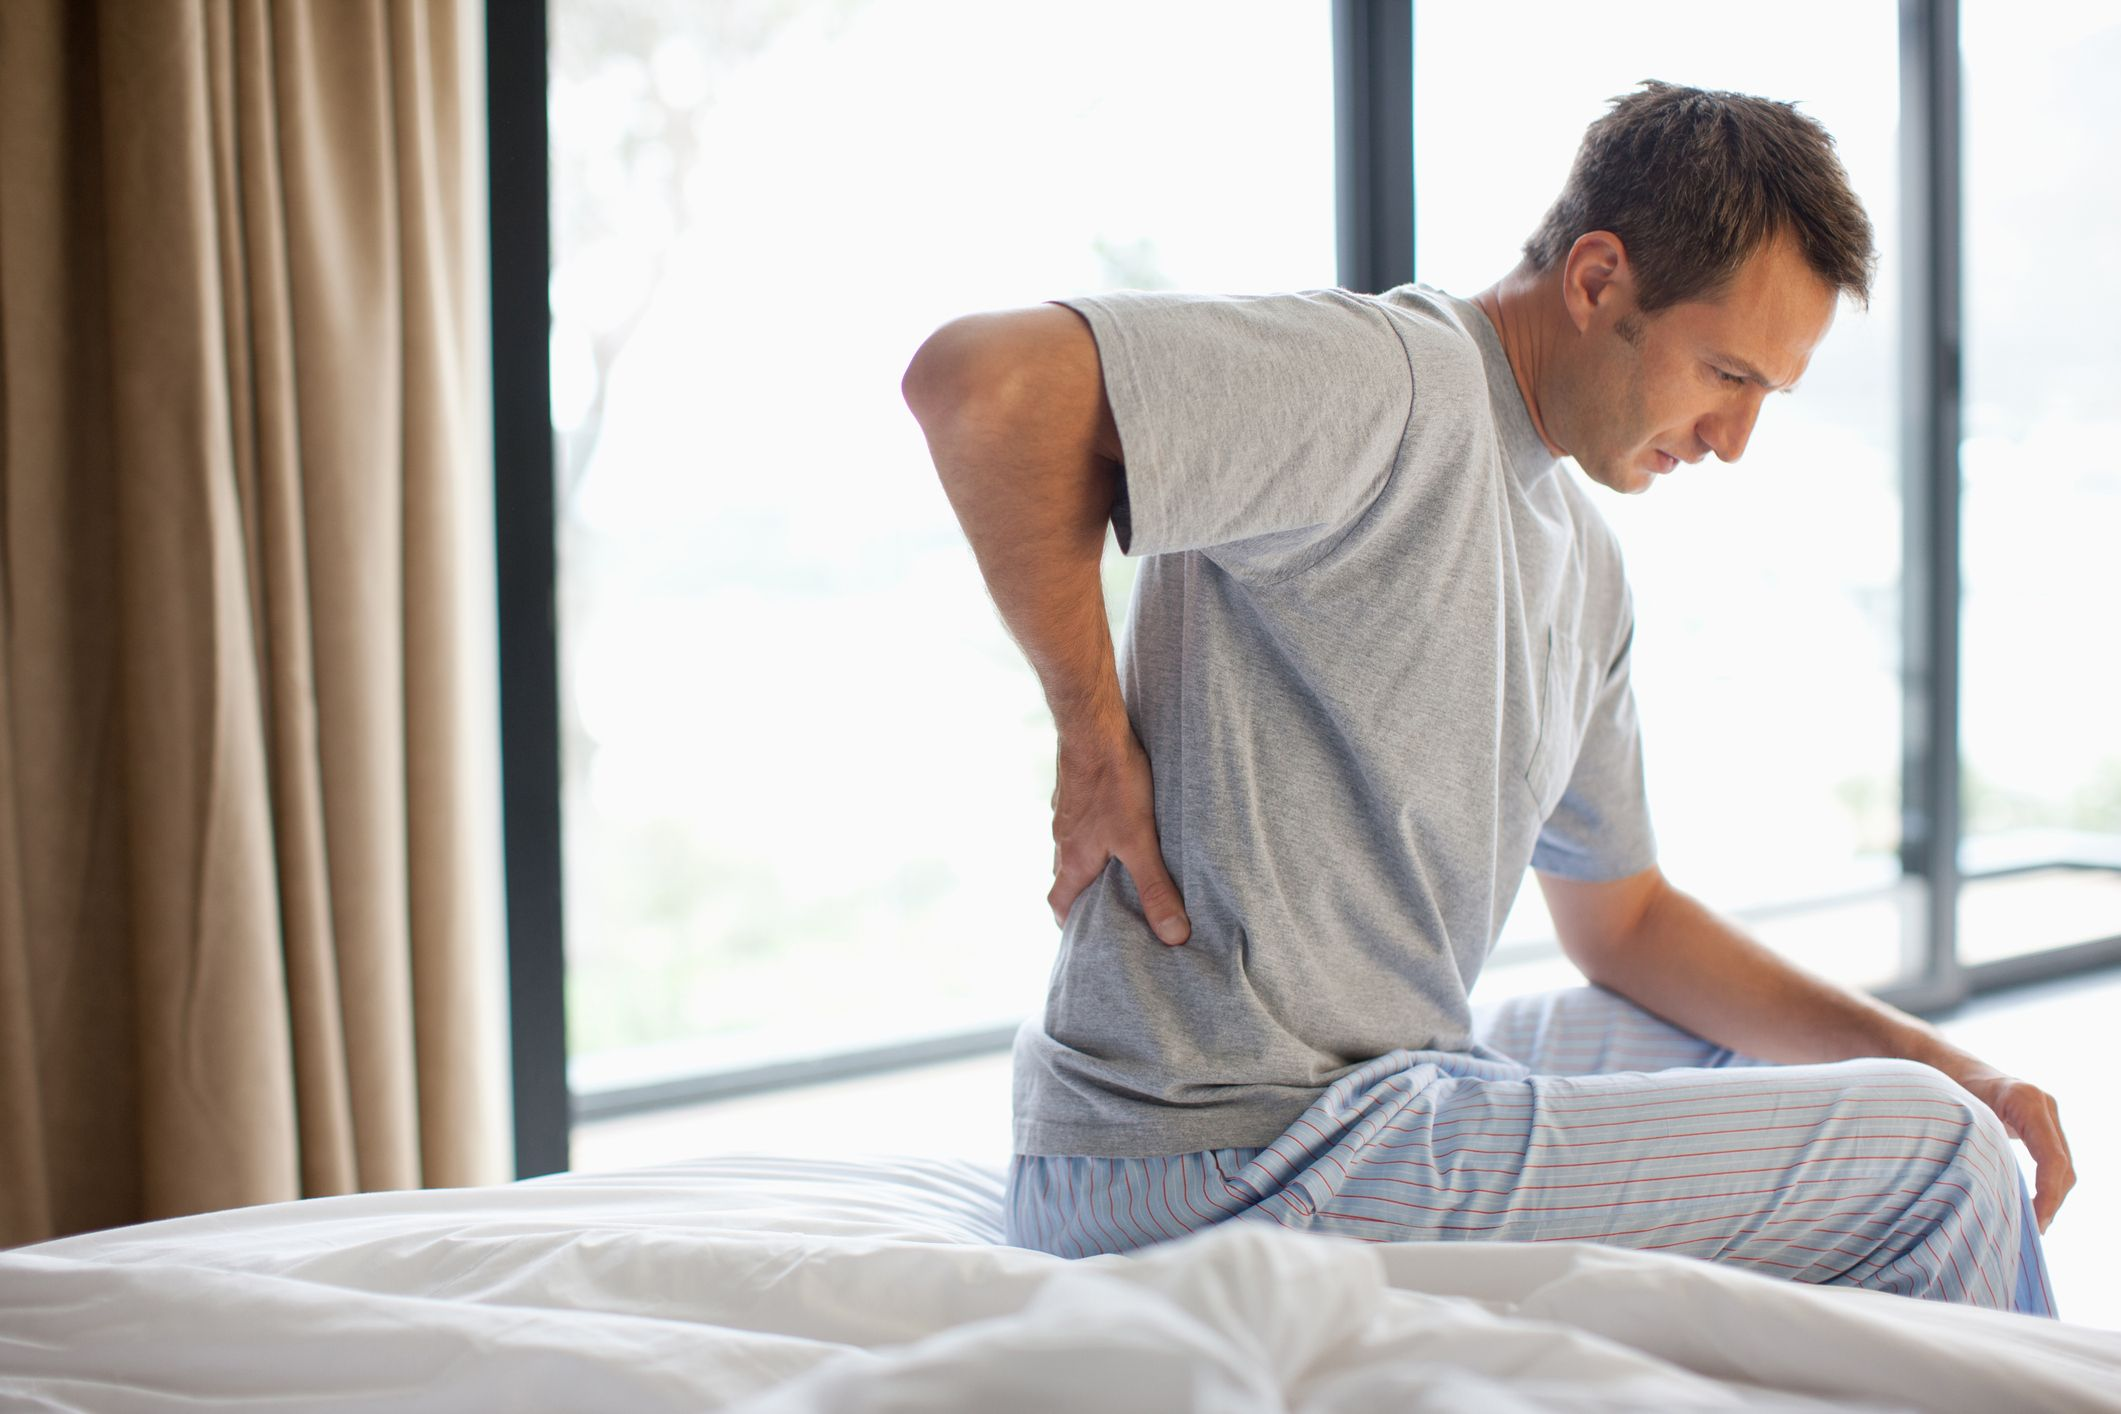 Runner's lower back syndrome - what causes it, how to treat it and